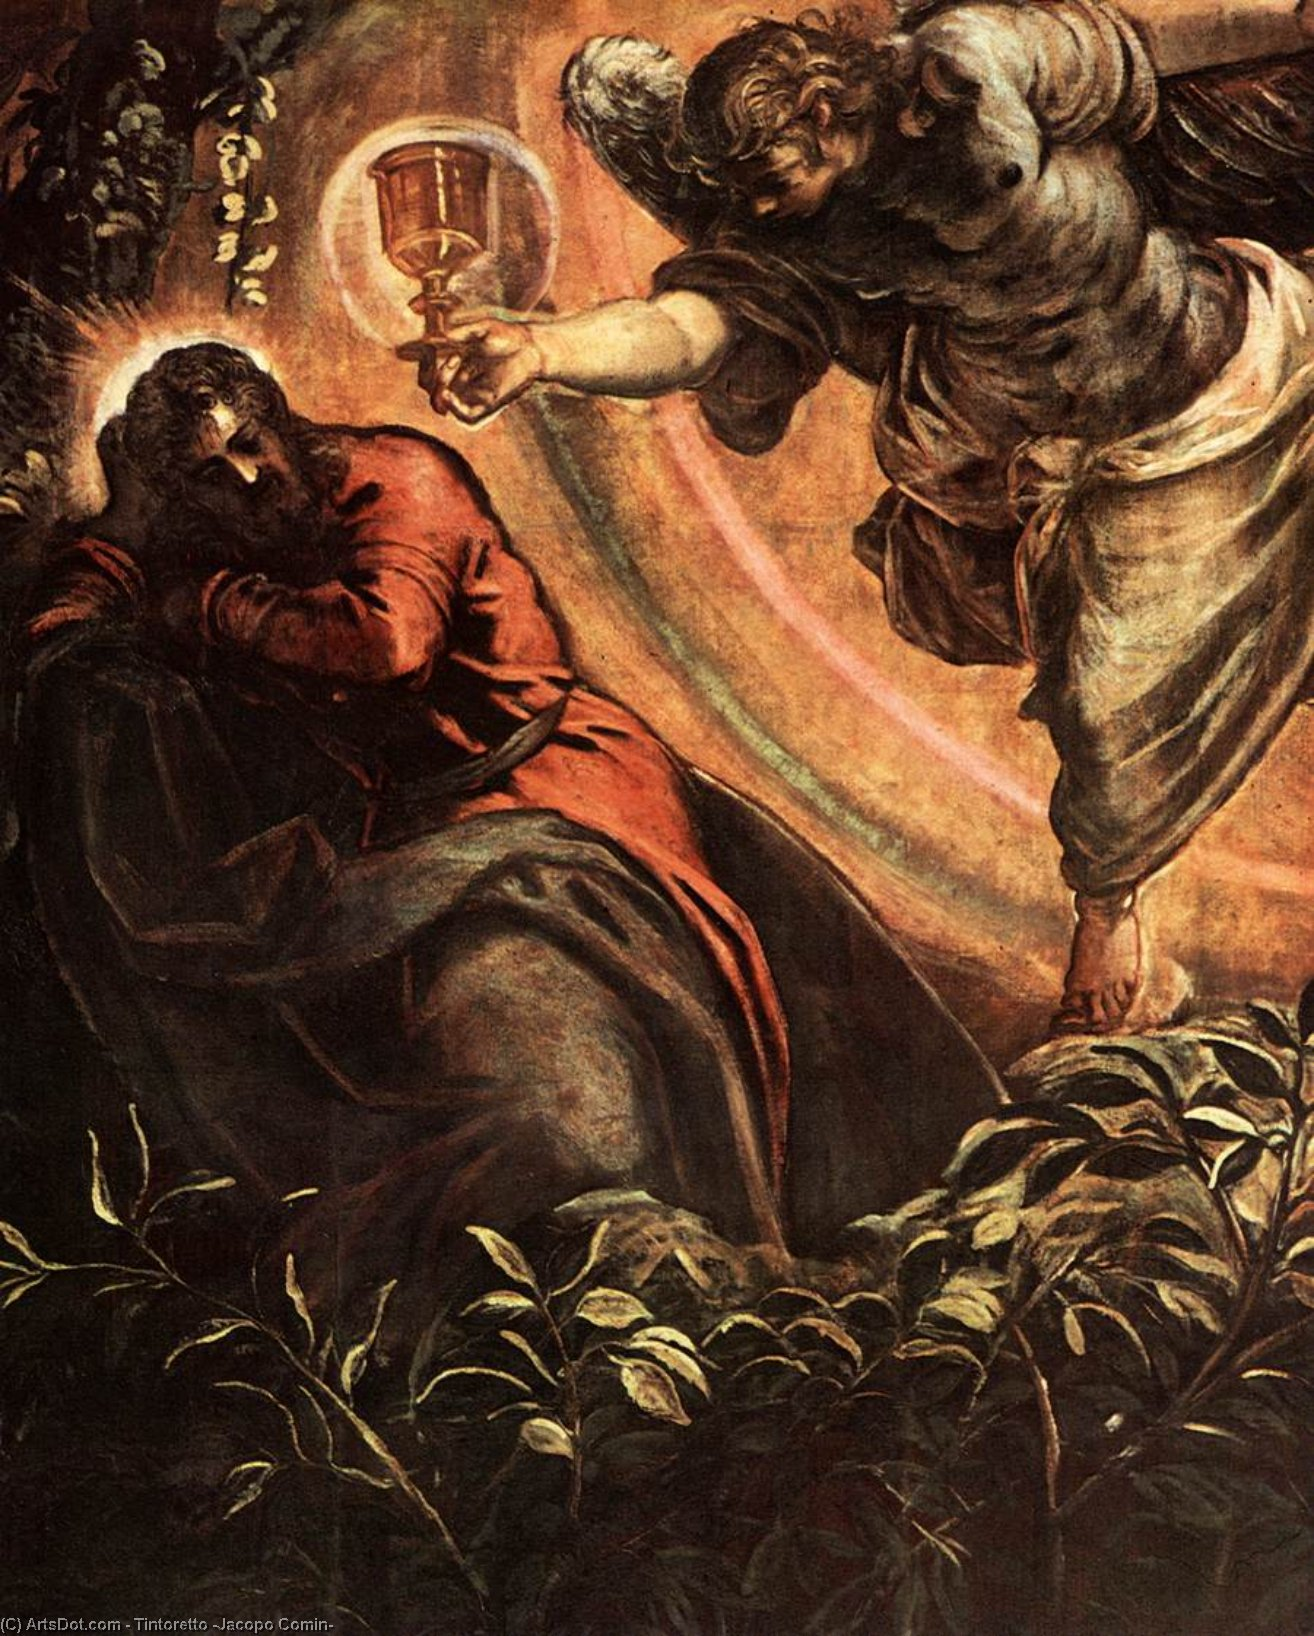 Wikioo.org - The Encyclopedia of Fine Arts - Painting, Artwork by Tintoretto (Jacopo Comin) - The Prayer in the Garden (detail)